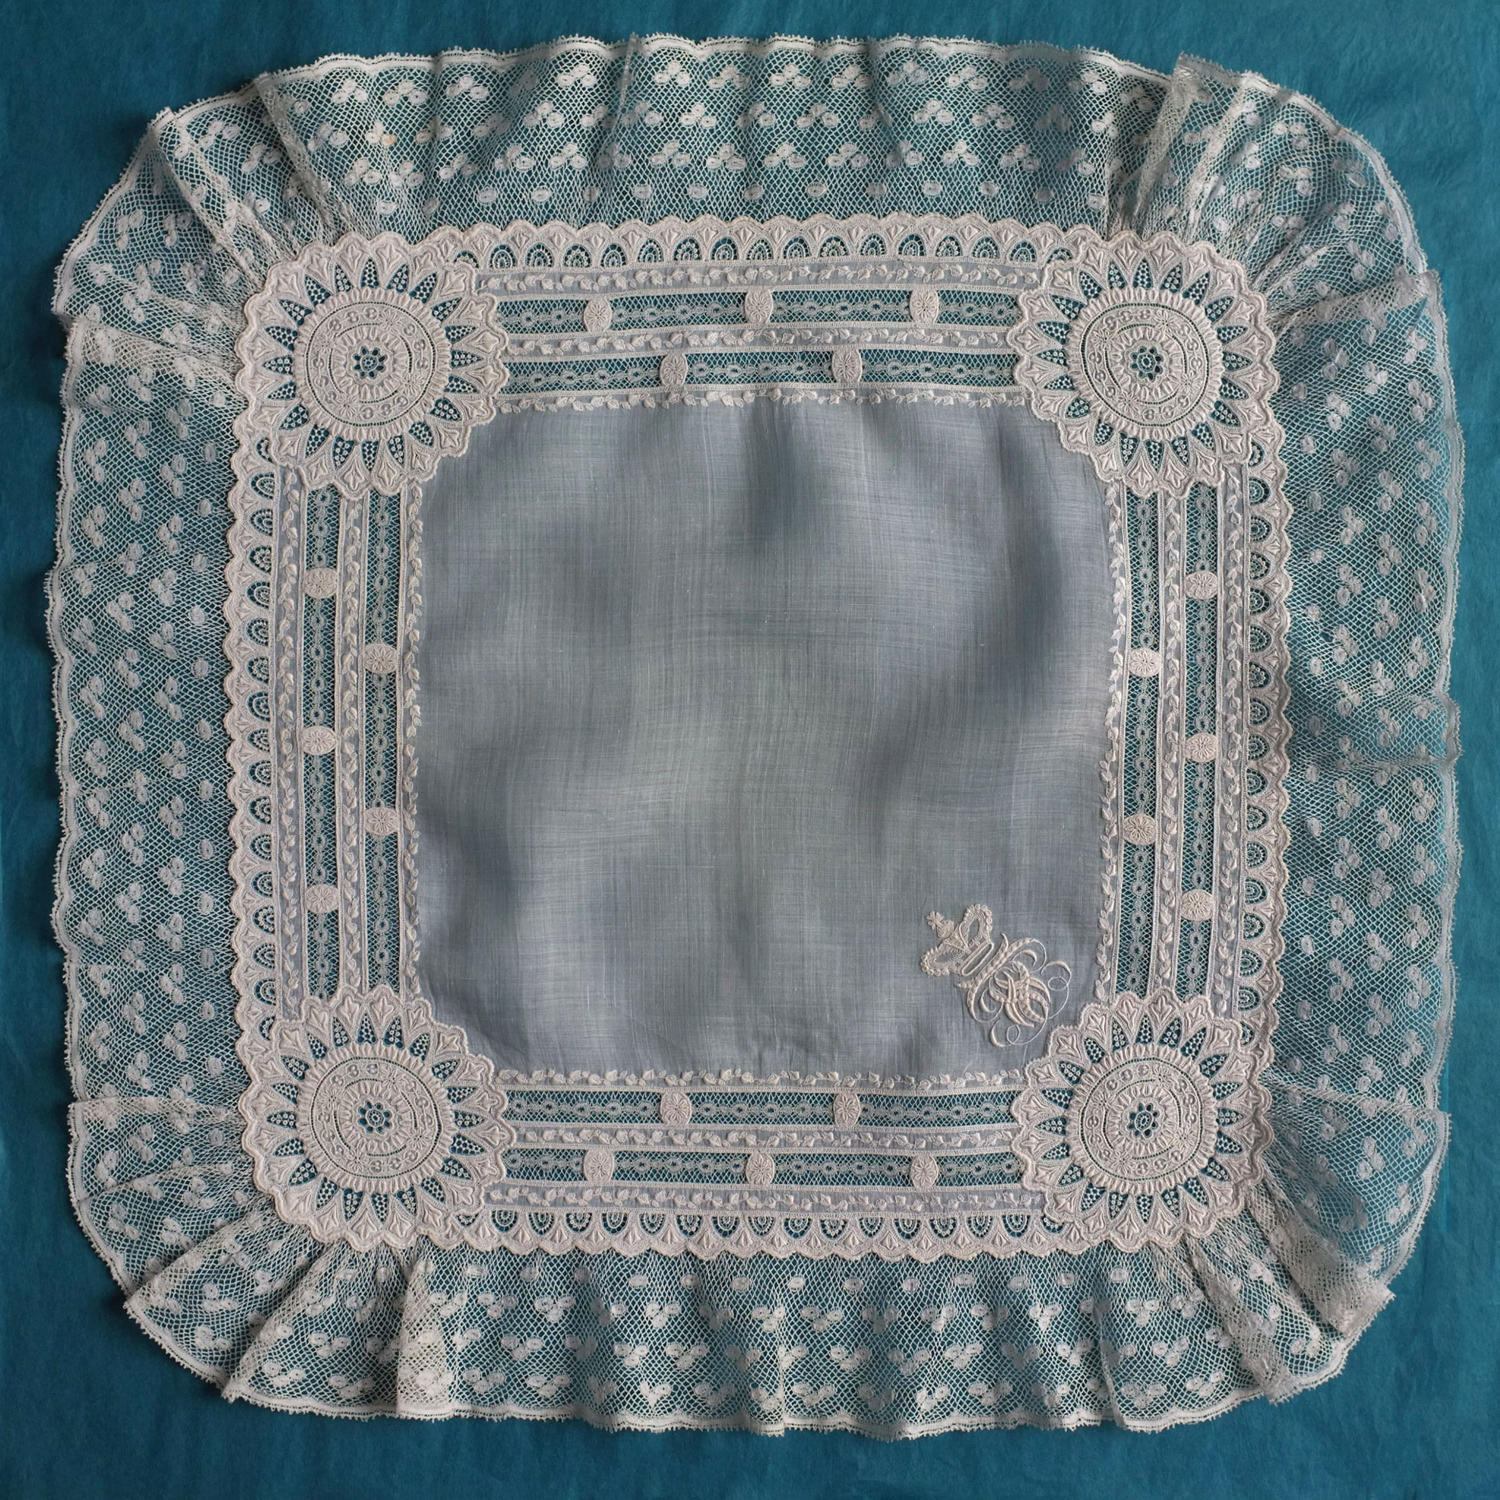 19th Century Whitework Handkerchief with Valenciennes Lace & Crown